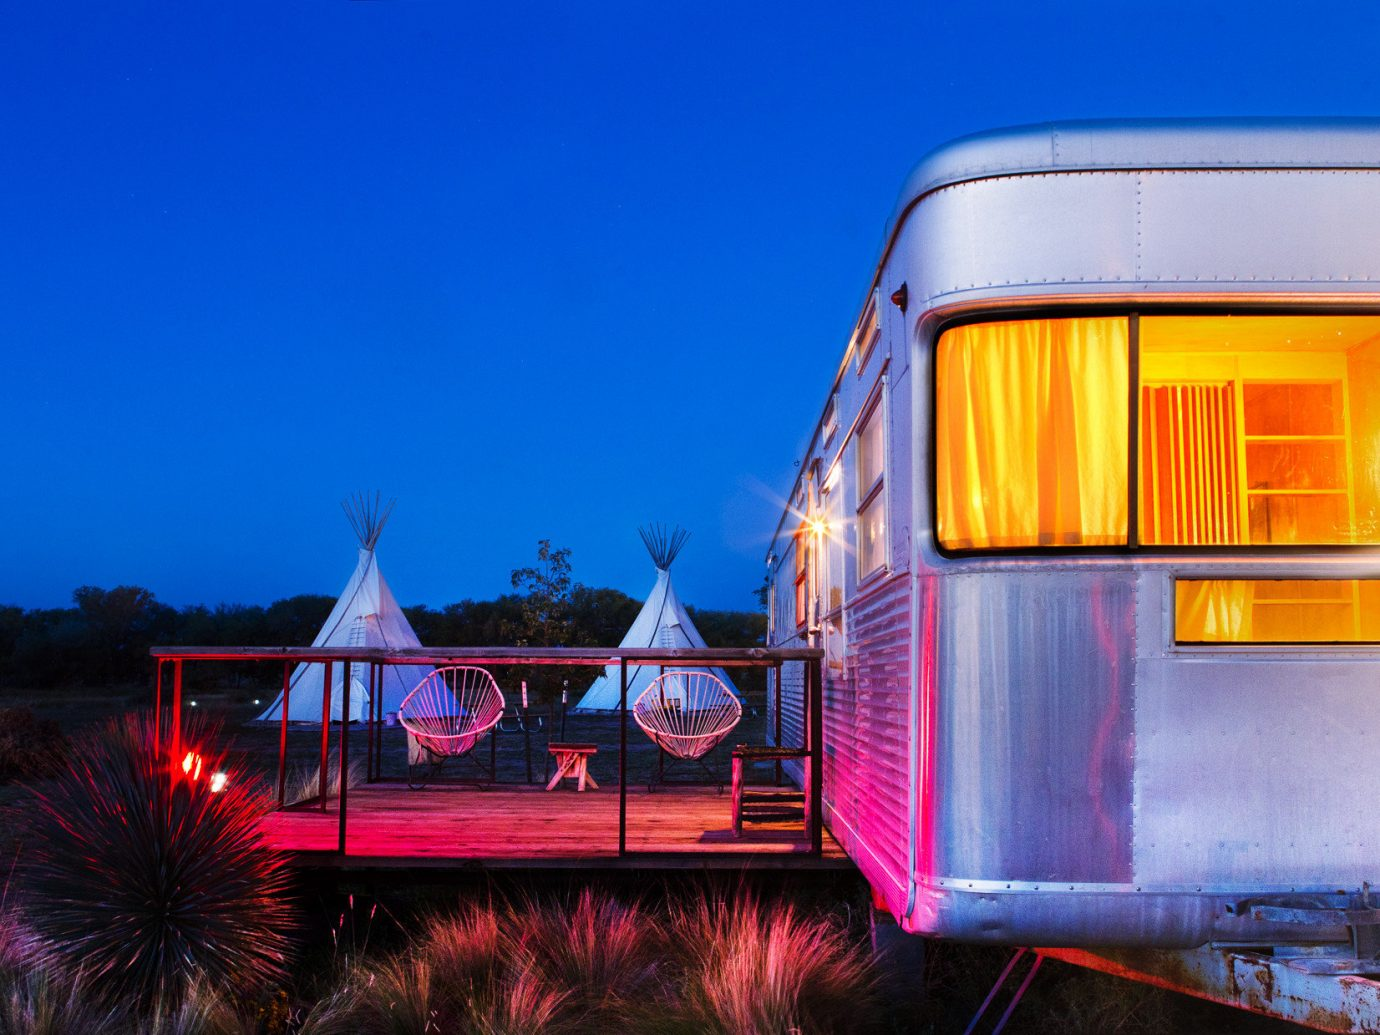 airstream ambient lighting artistic artsy calm Exterior Glamping Hip isolation Luxury Travel night Night Sky Patio porch quirky remote serene Terrace trendy Trip Ideas sky outdoor transport vehicle light evening